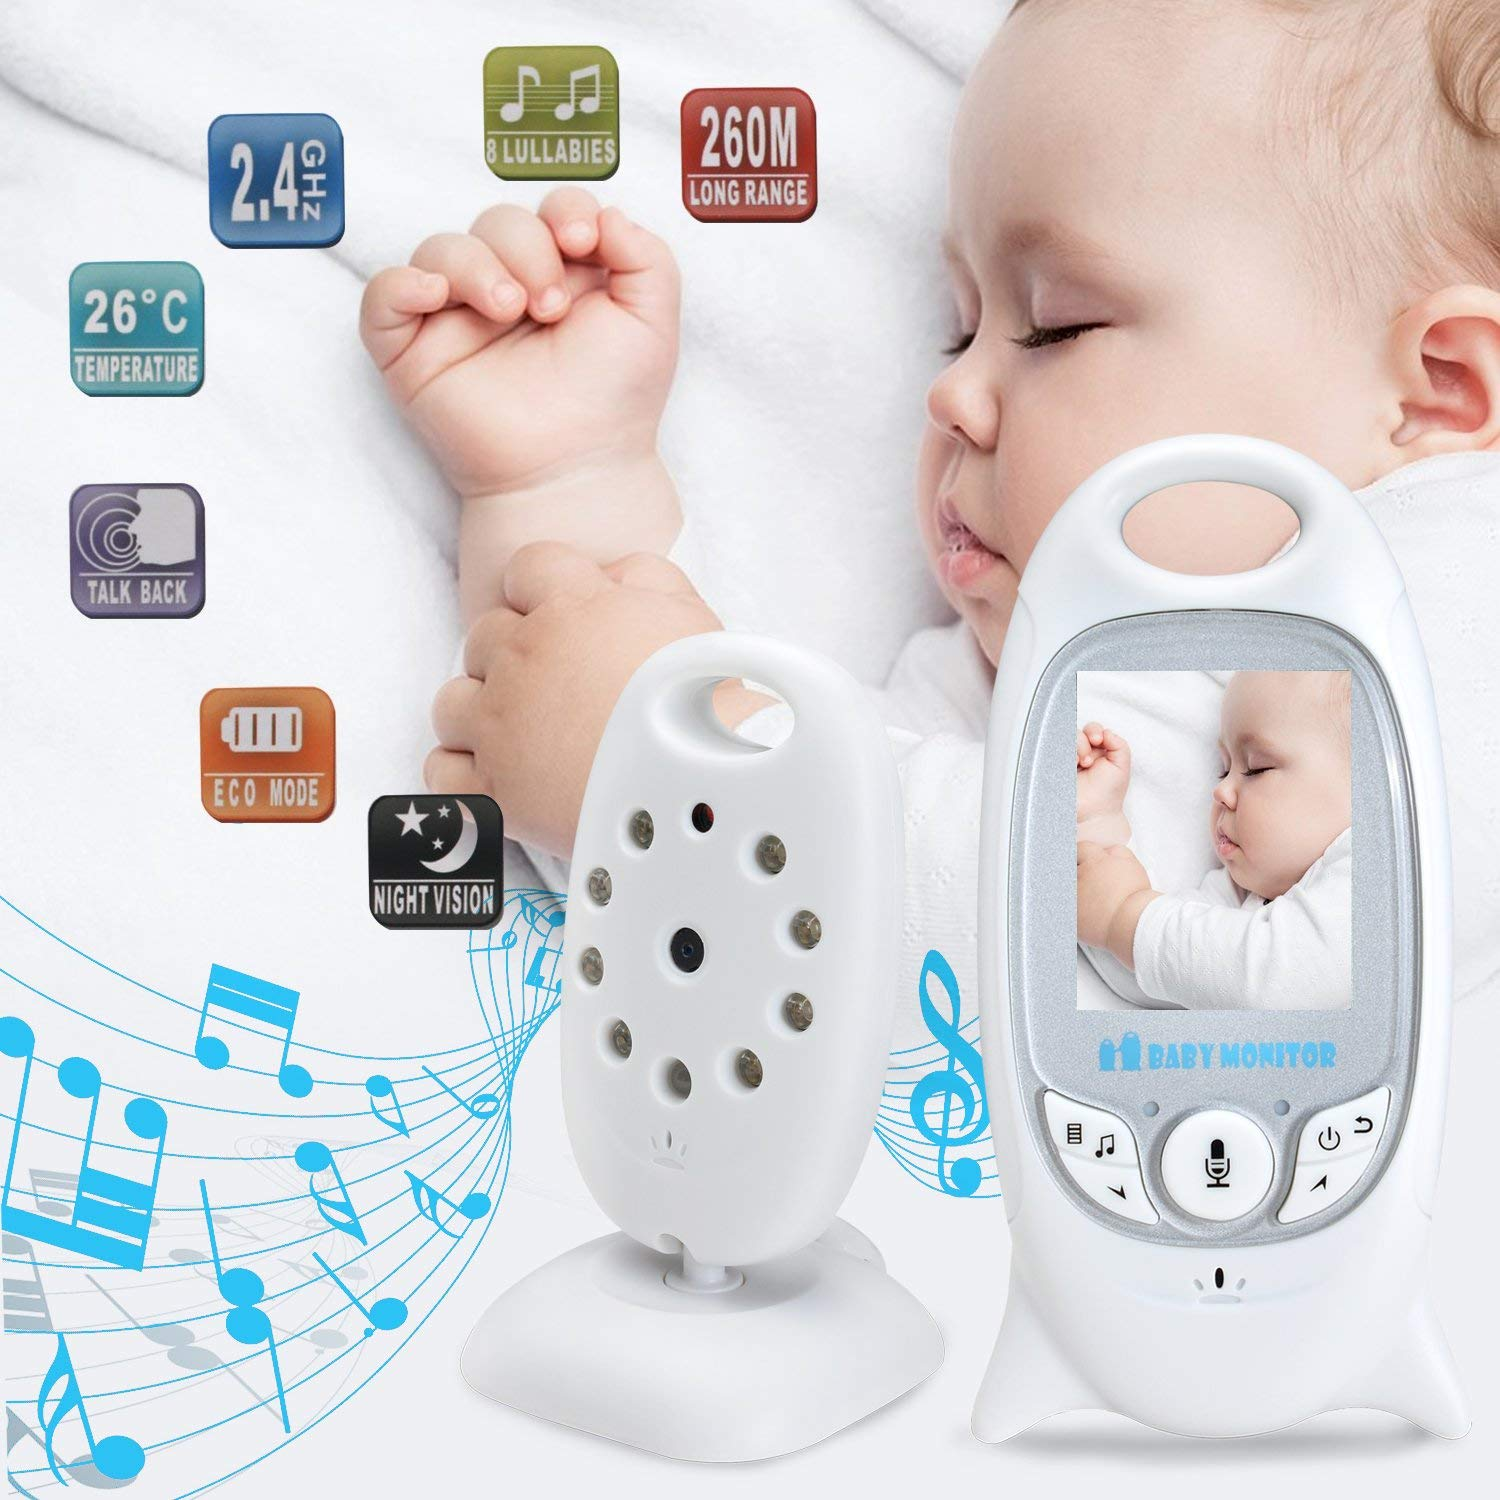 MYPIN Wireless Baby Video Monitor with Digital Camera 2.0 Inch Screen Night Vision /& Two-Way Talk LCD Display Temperature Monitor